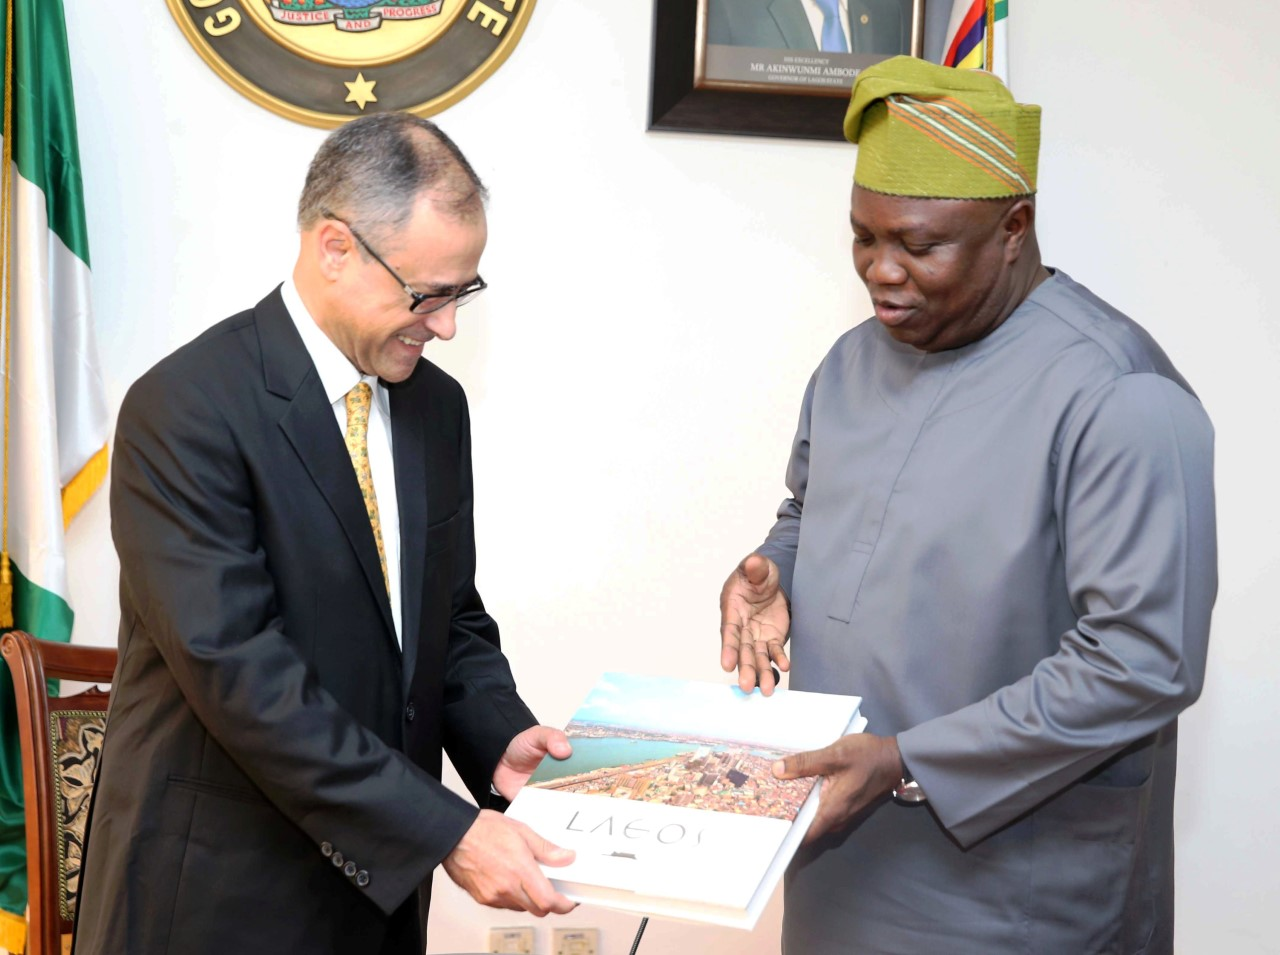 Akinwunmi Ambode, Lagos state governor and Patrizio Pagano, World Bank delegate